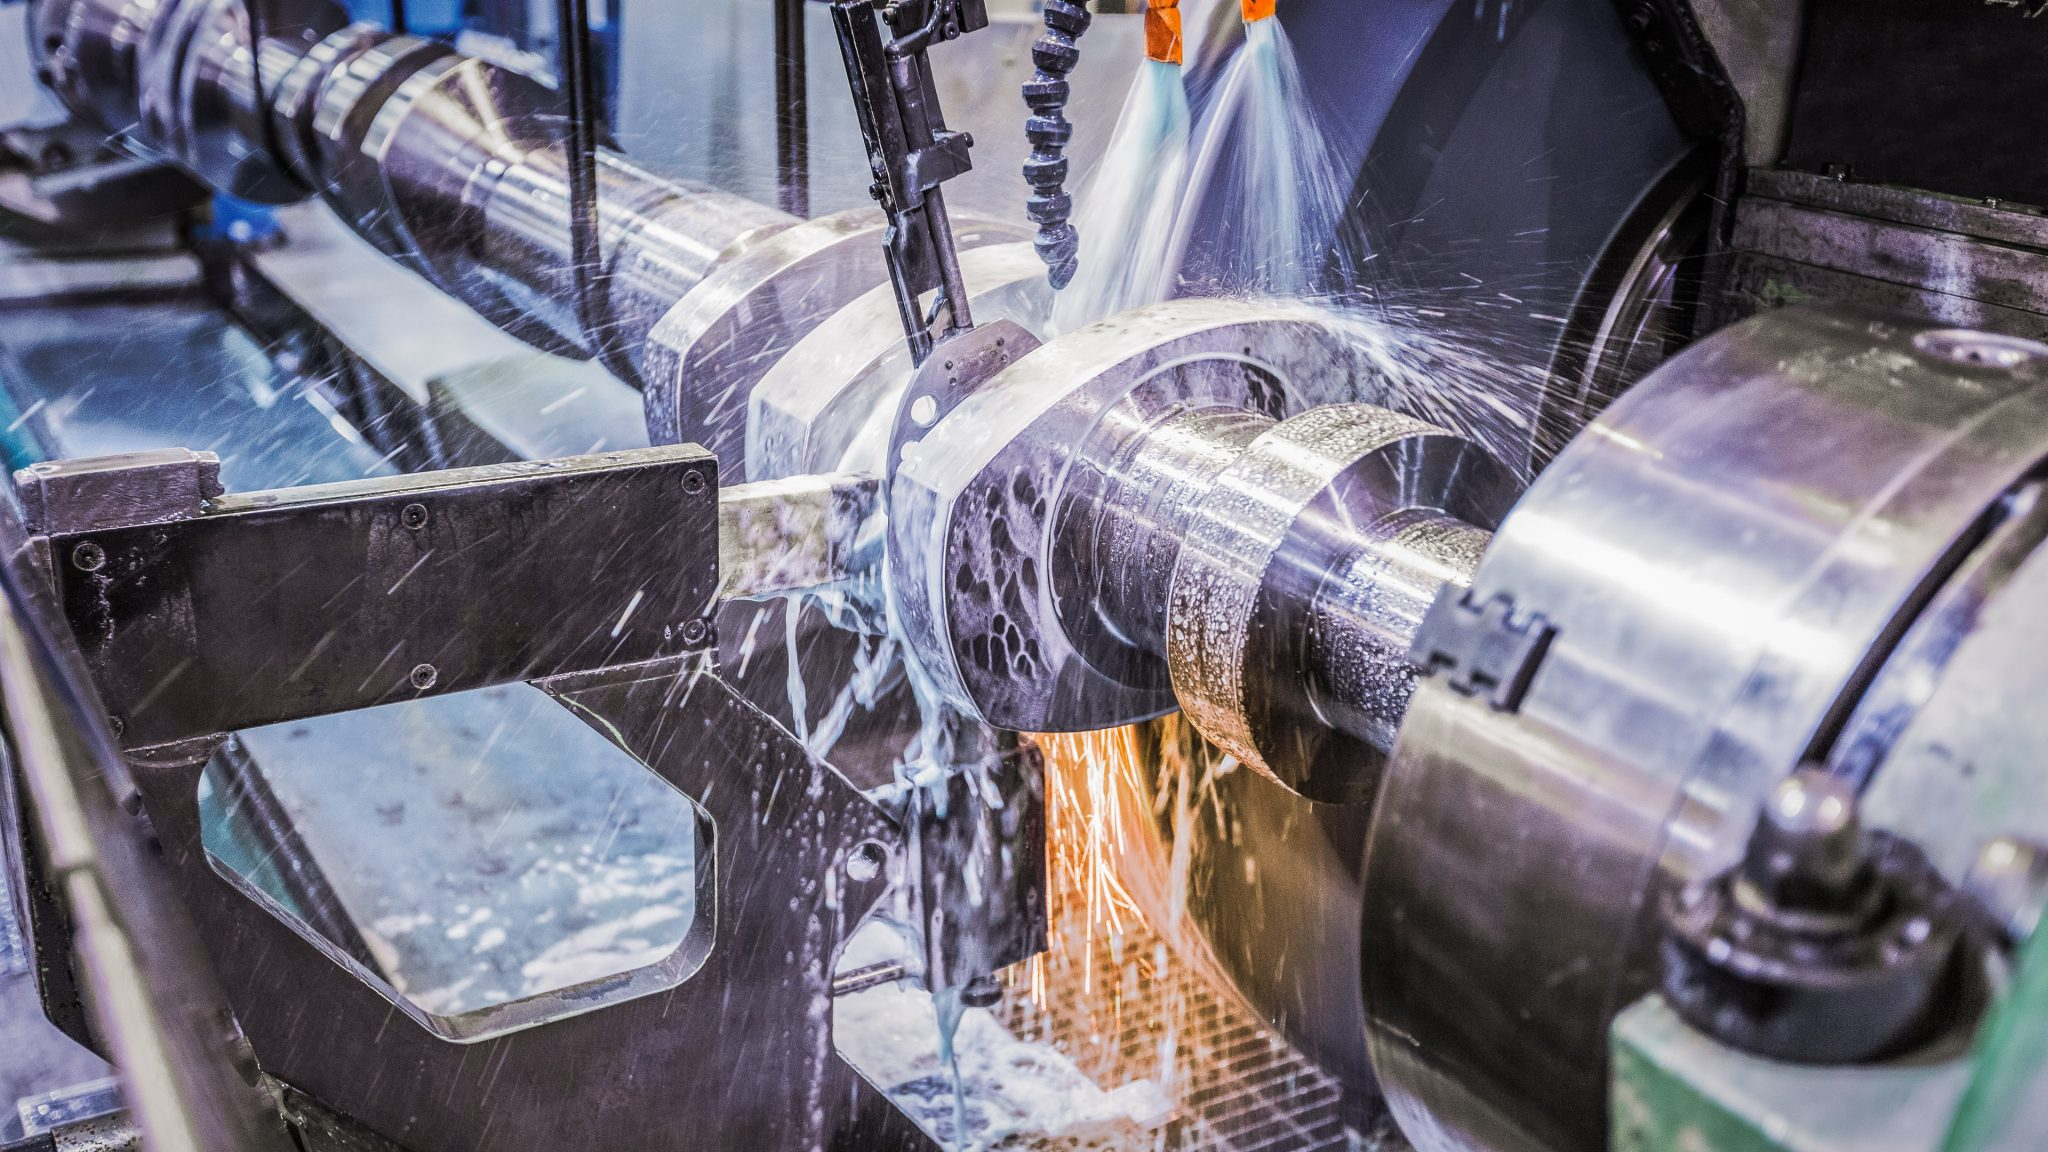 An Ariel crankshaft going through its grinding process